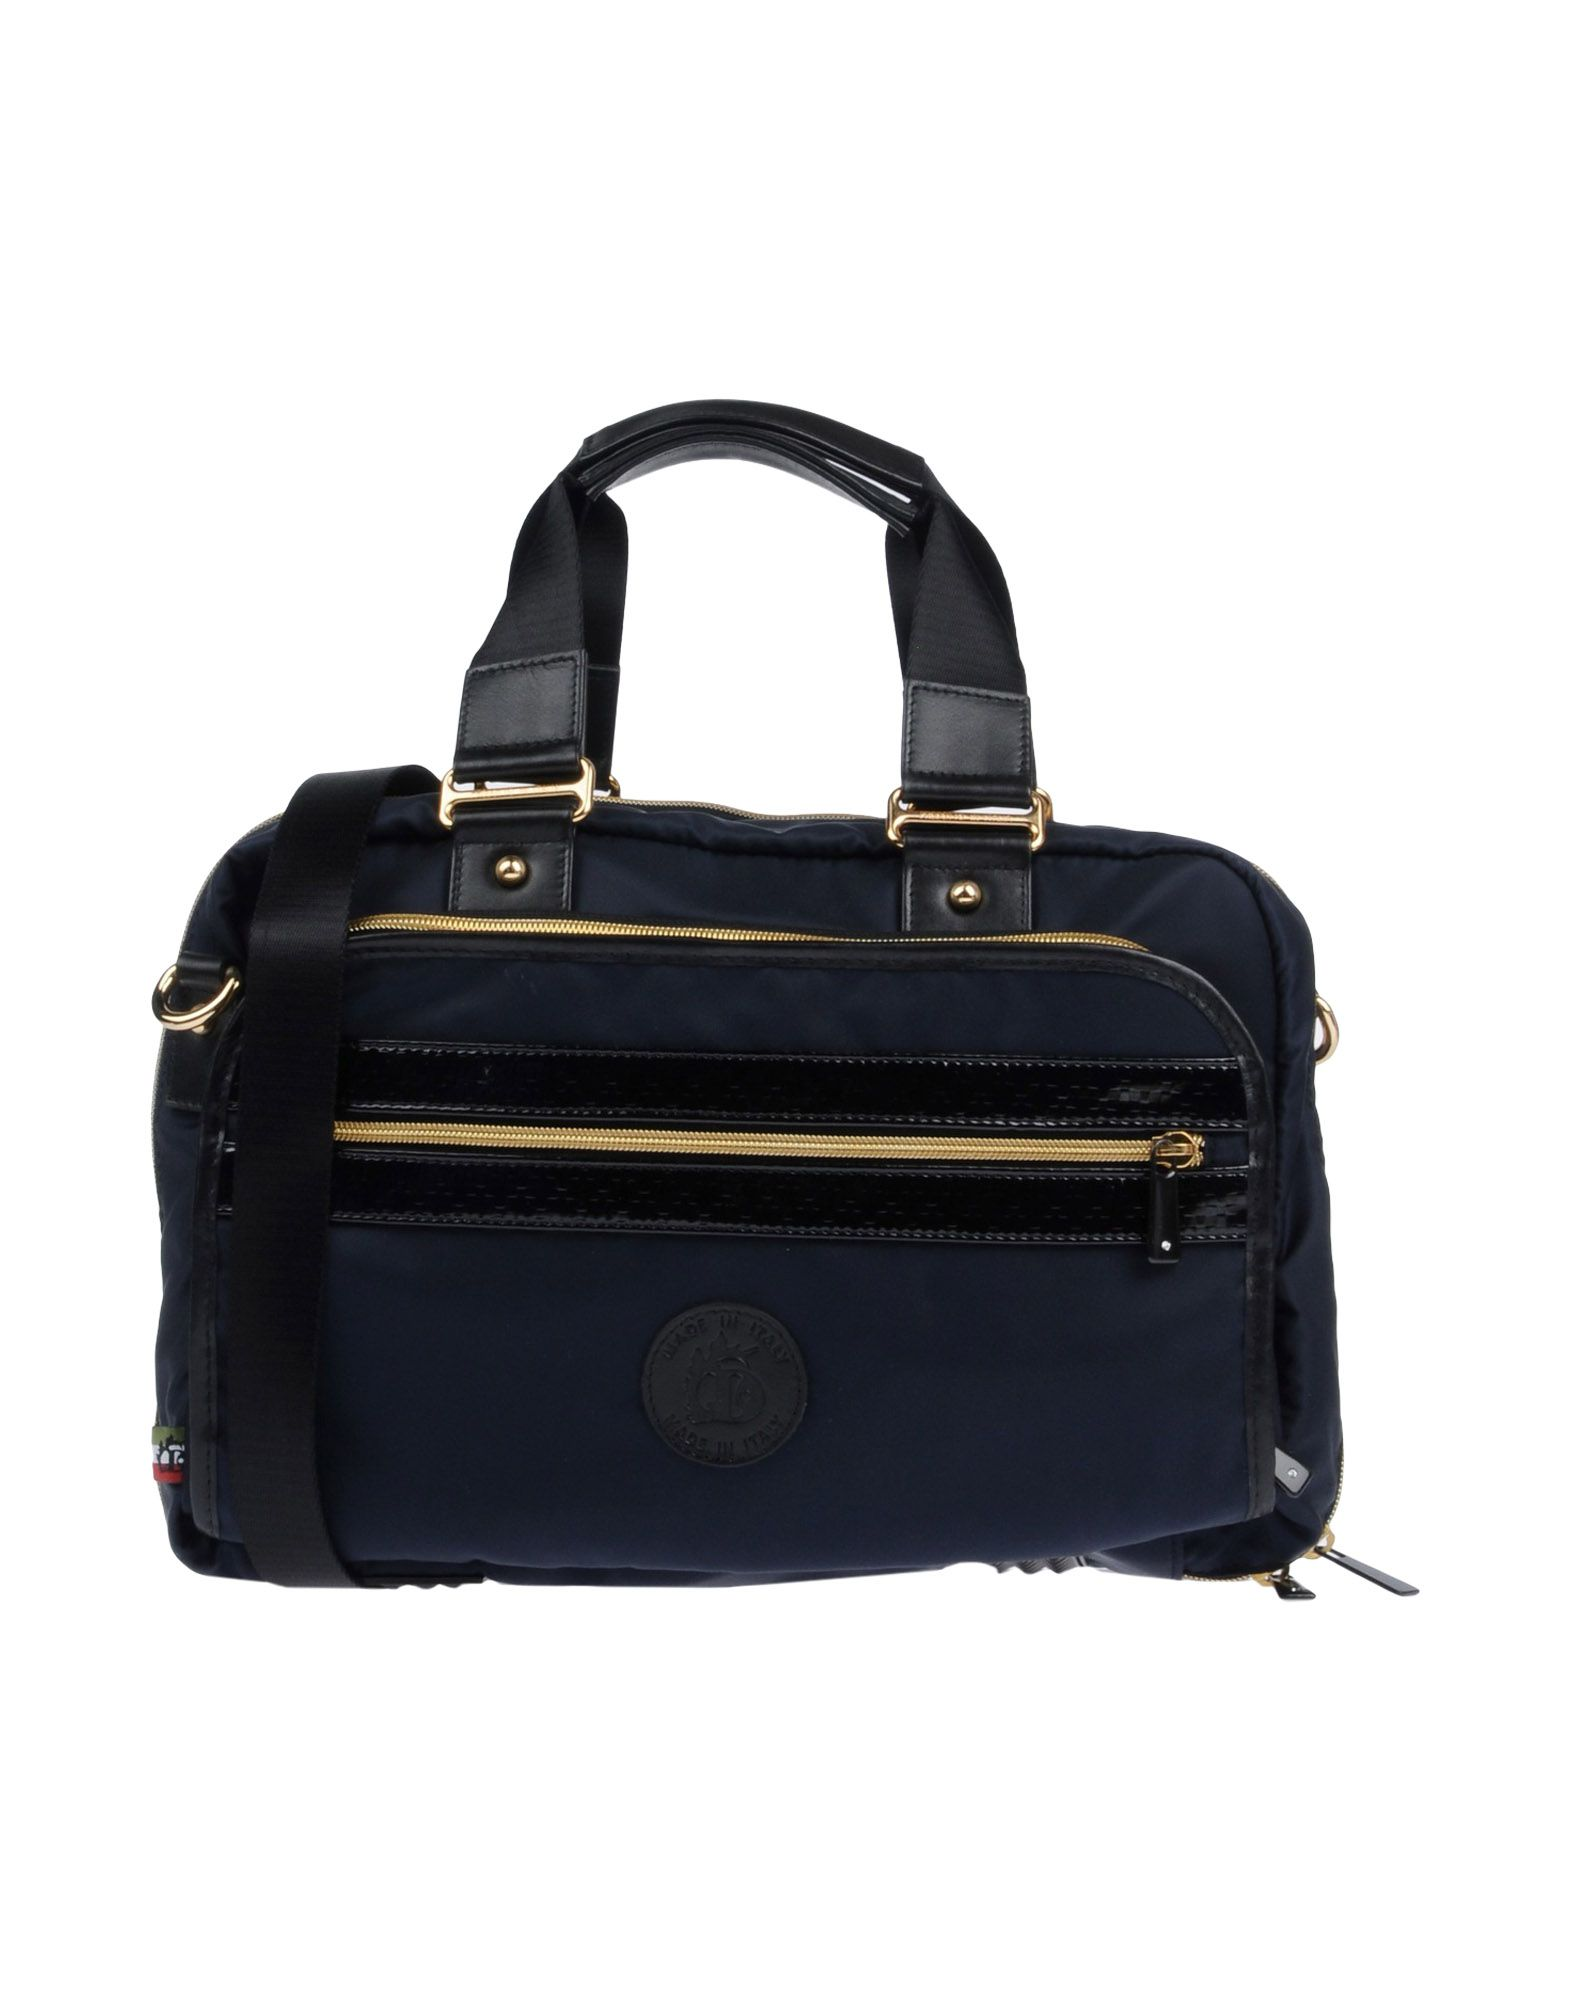 DESERTIKA Handbag in Dark Blue